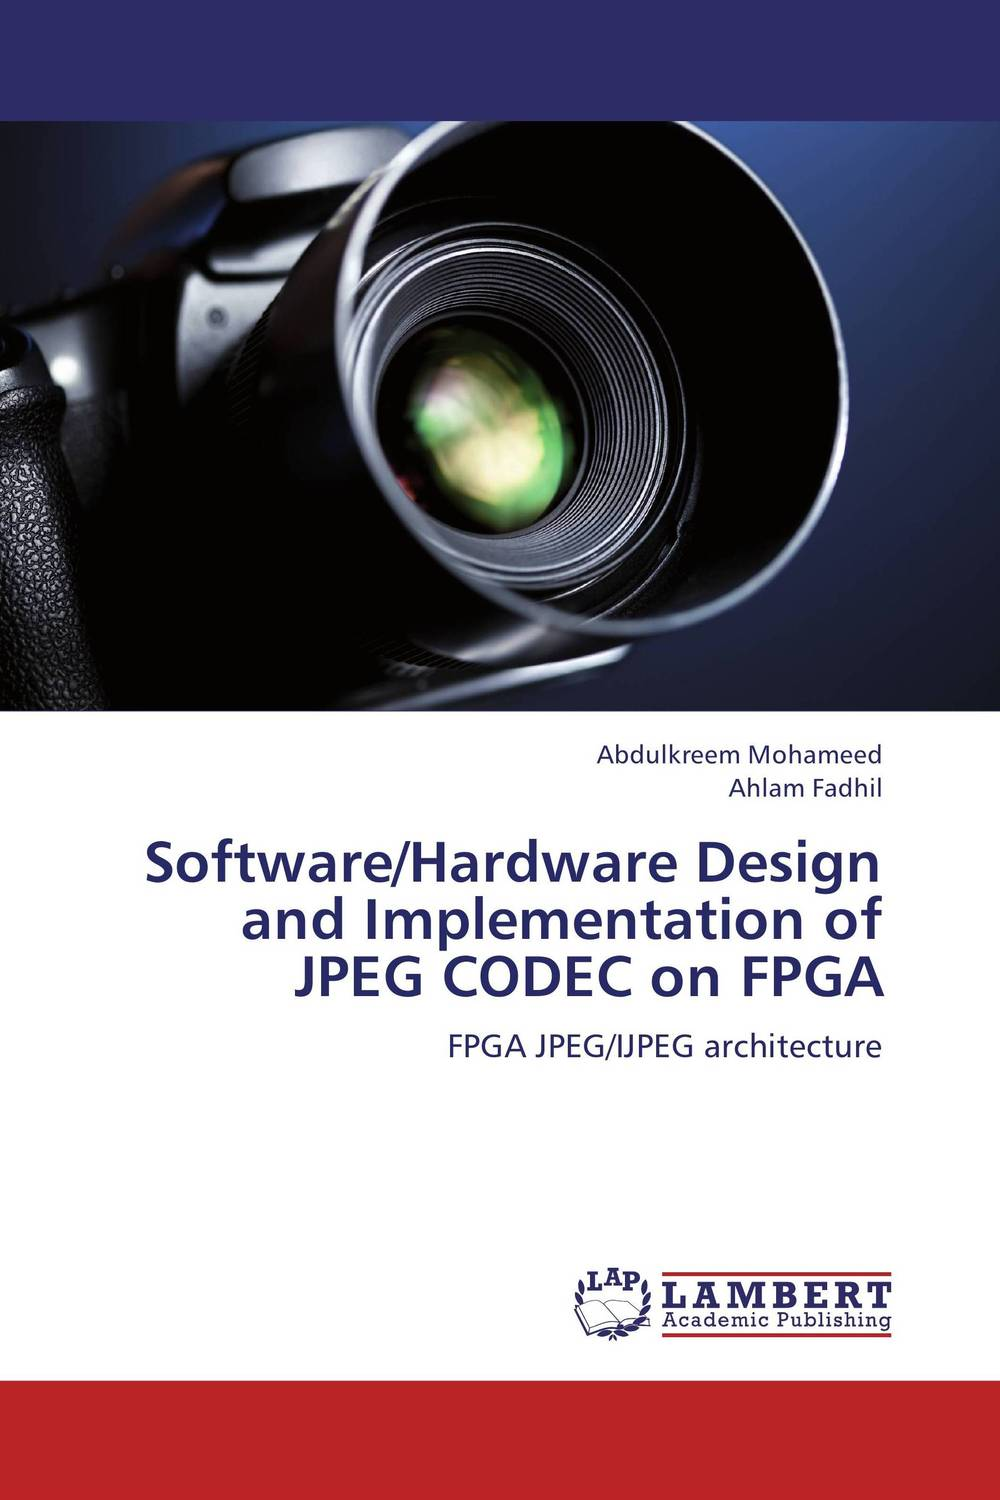 Software/Hardware Design and Implementation of JPEG CODEC on FPGA ледянки 1toy ледянка 52 см круглая 1toy winx